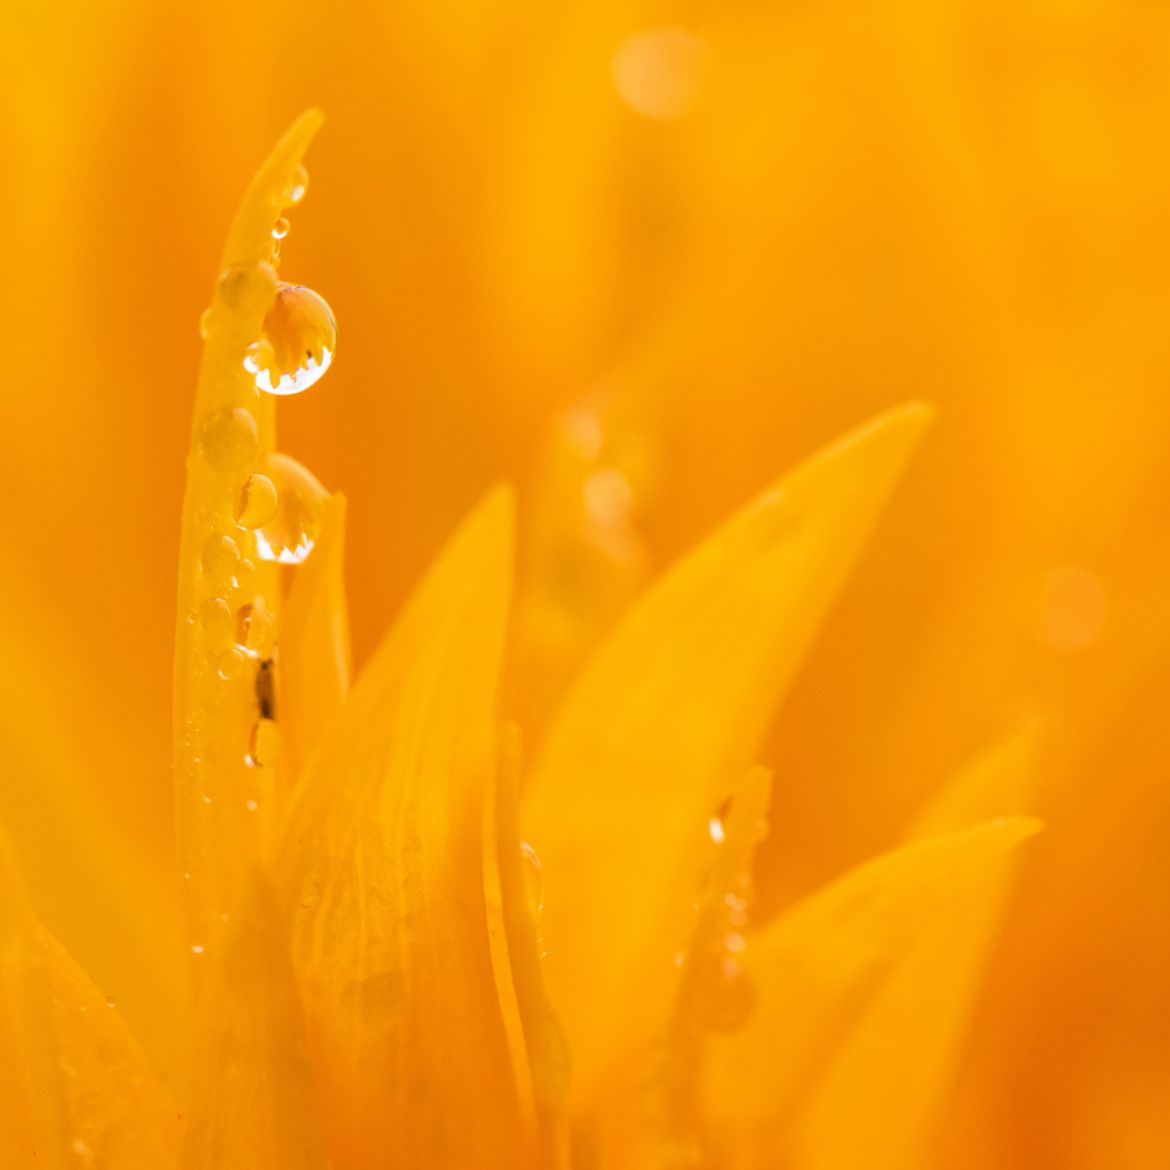 Photograph ☼ After the rain After the rain by Lucie Gagnon is 500px